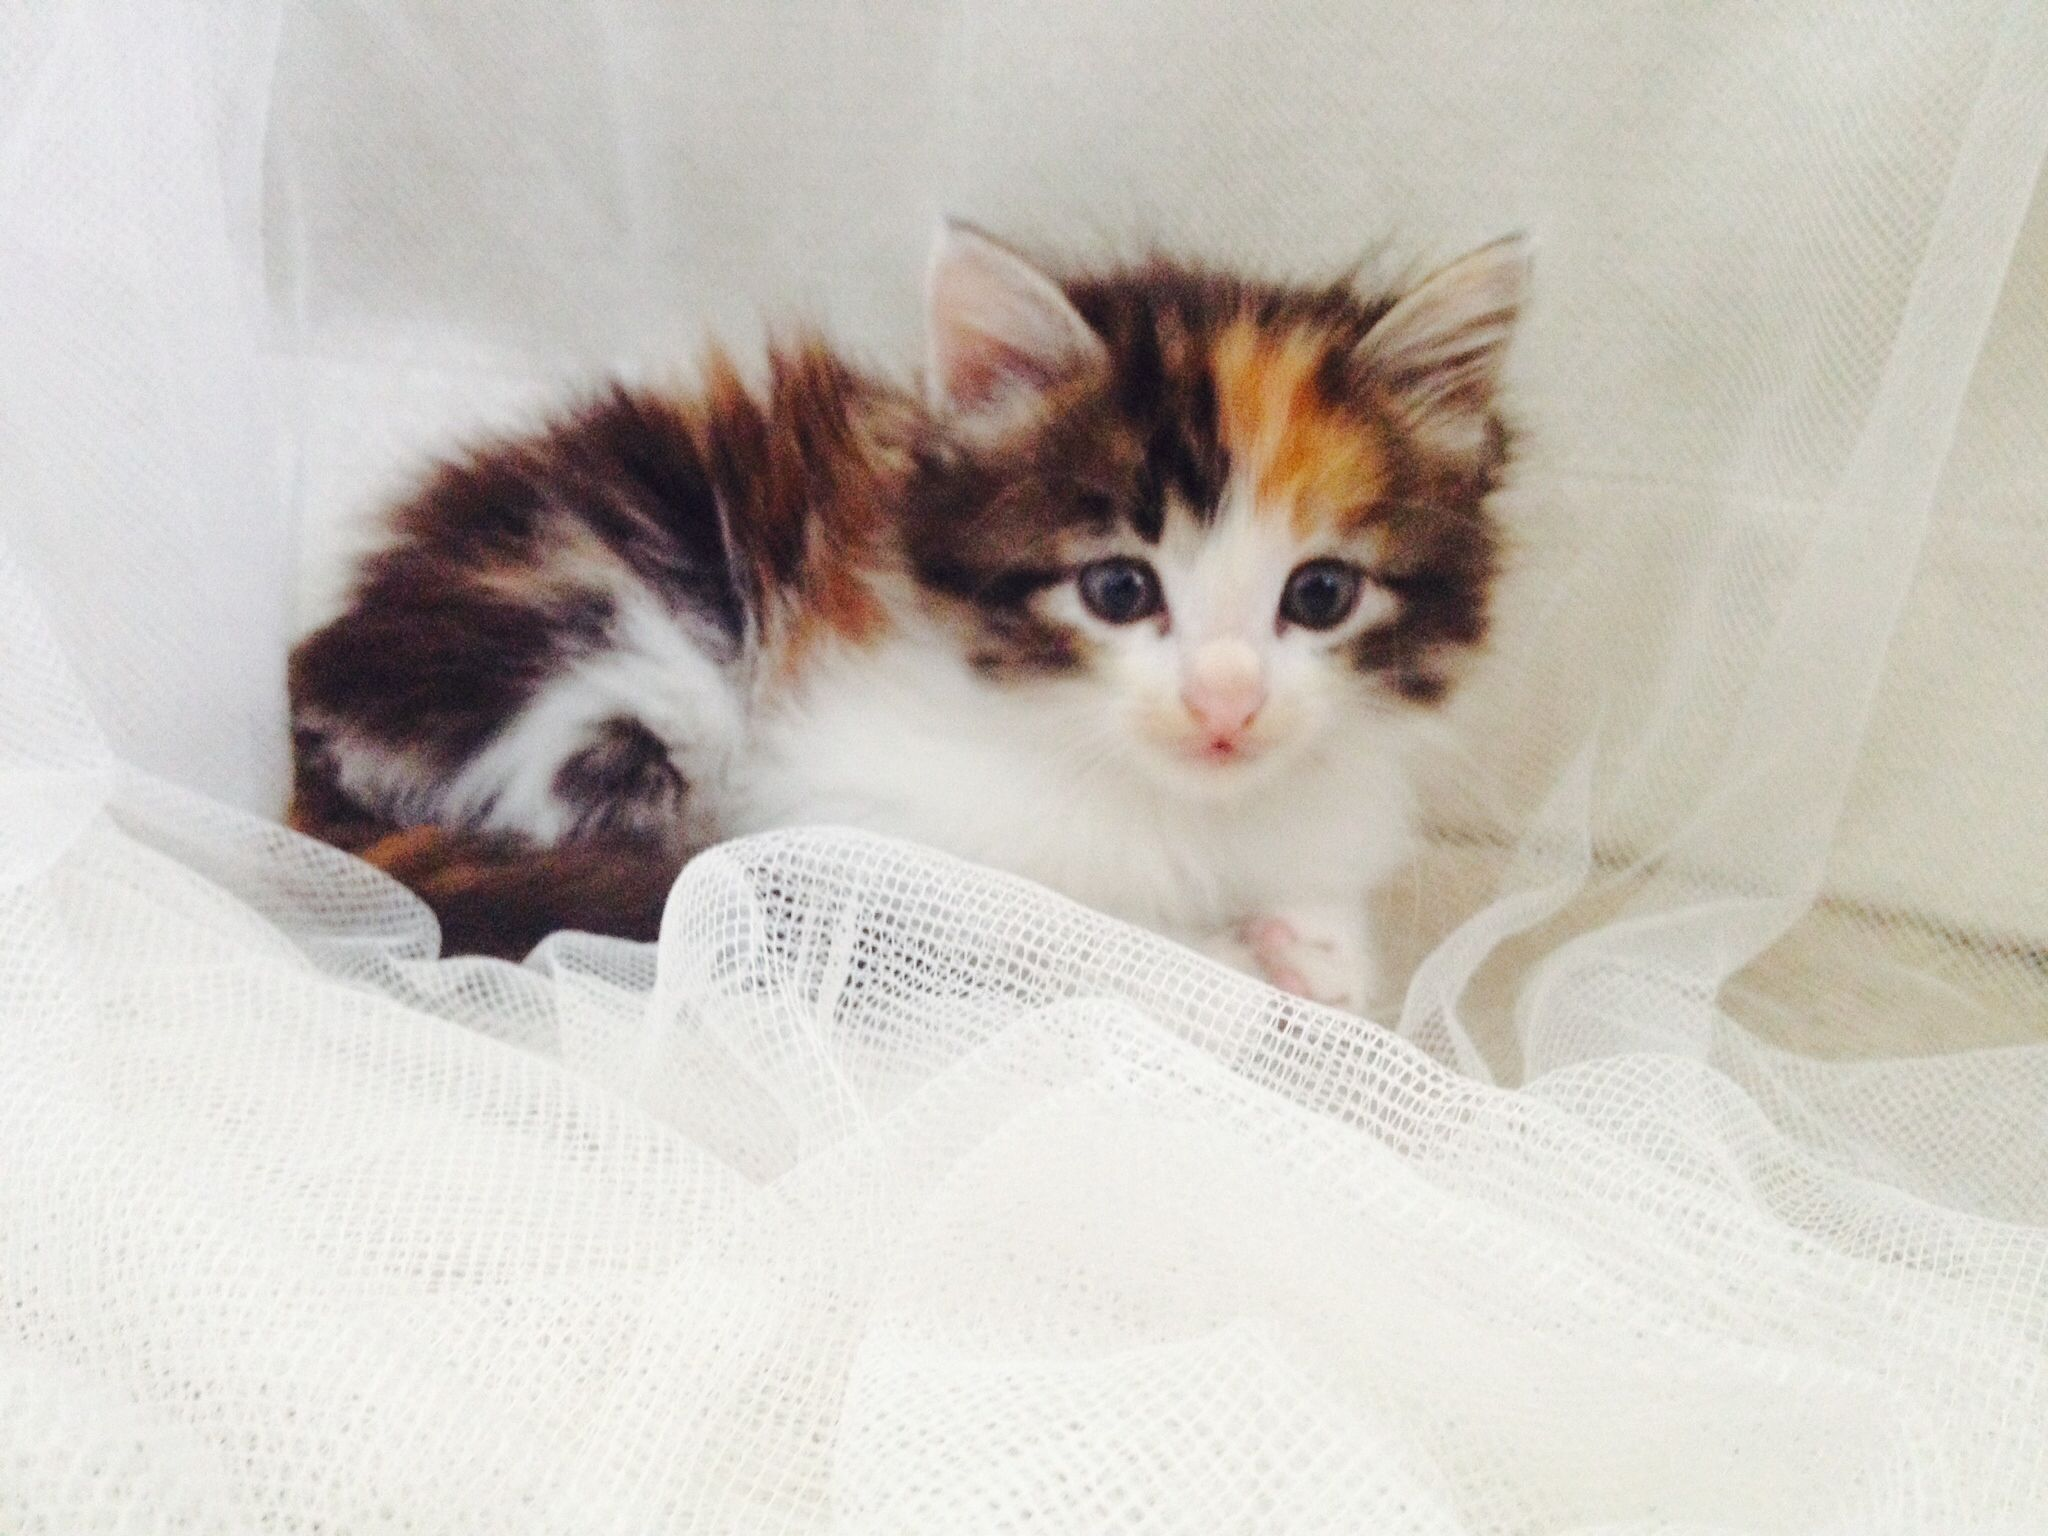 5 week old calico Maine Coon kitten. Classic longhair cat